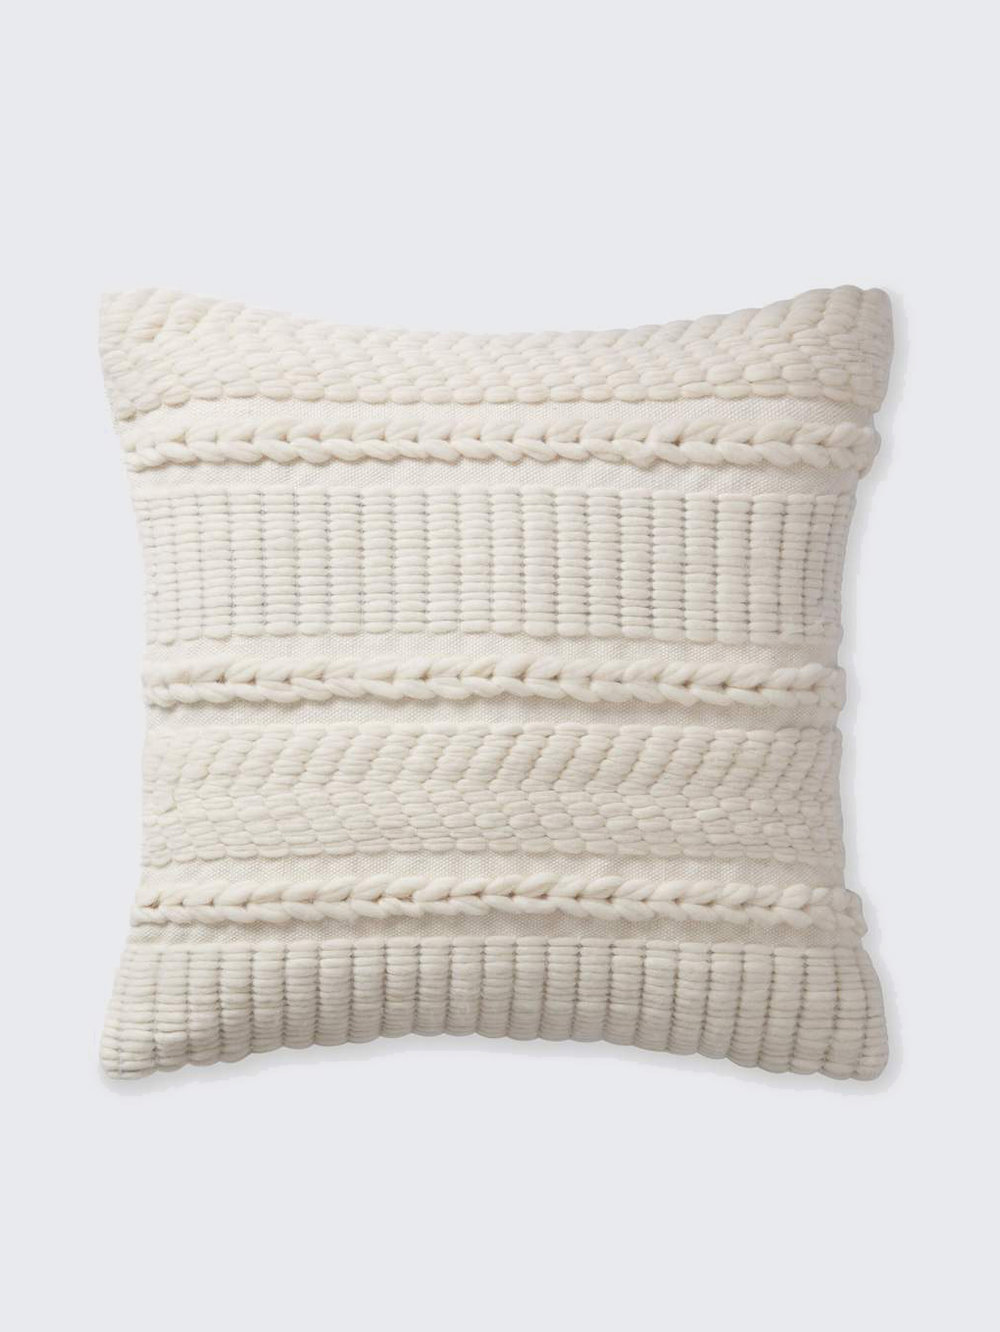 Woven Pillow from The Citizenry